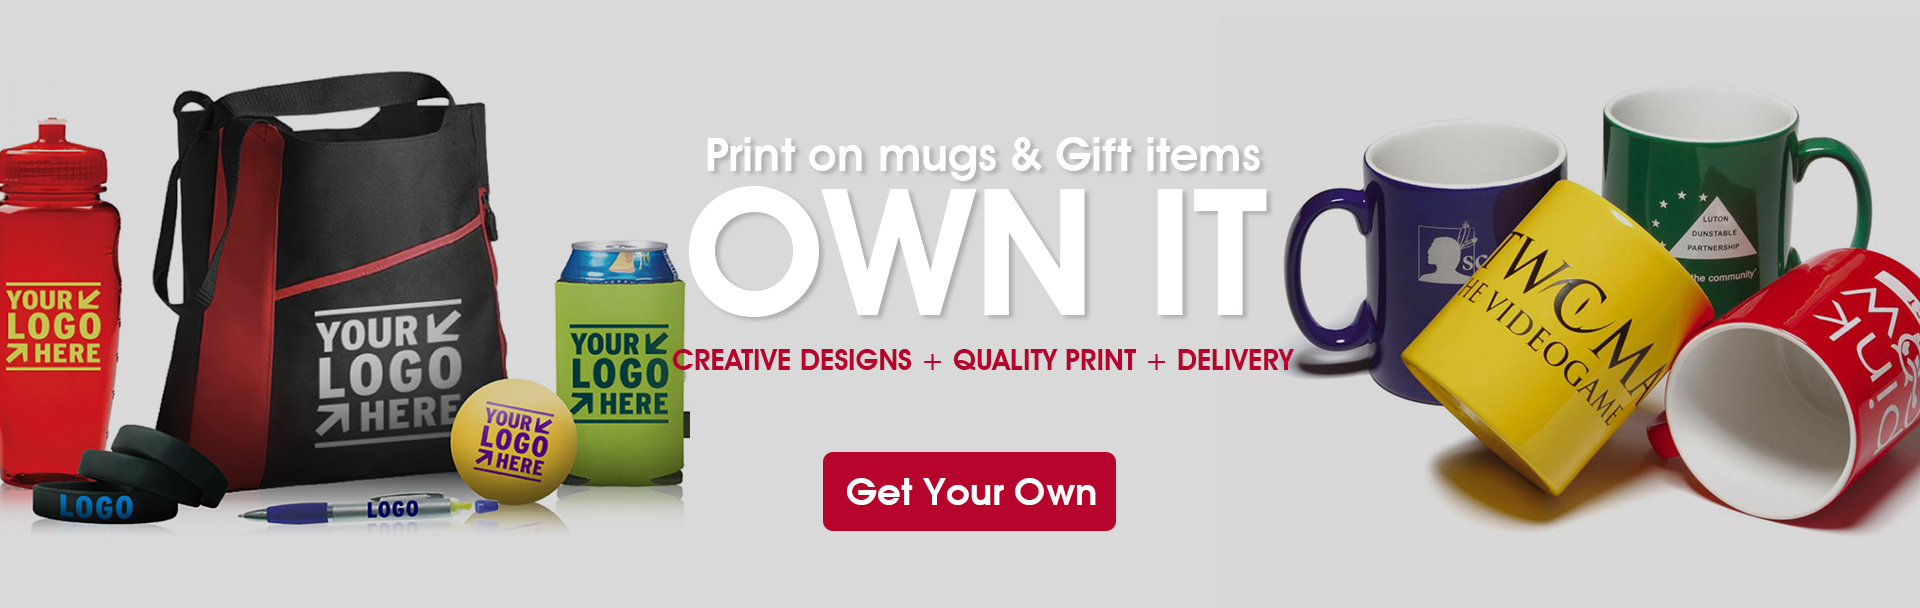 Corporate Gifts Printing | personalised mugs different shapes wholesale corporate gifts